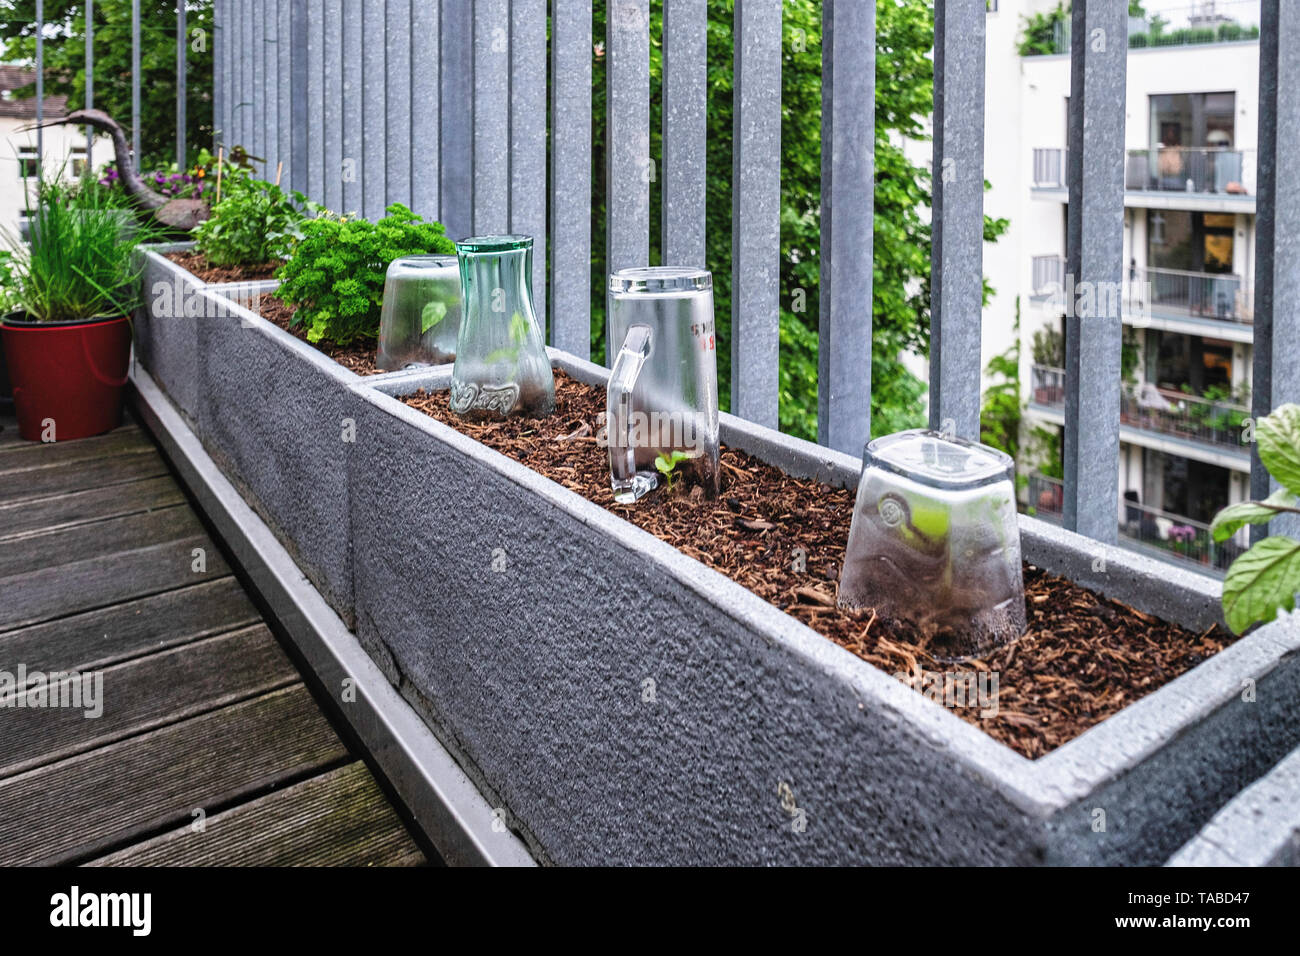 Balcony herb garden. Pot plants with chilli plants covered in drinking glasses to protect from cold wind Stock Photo